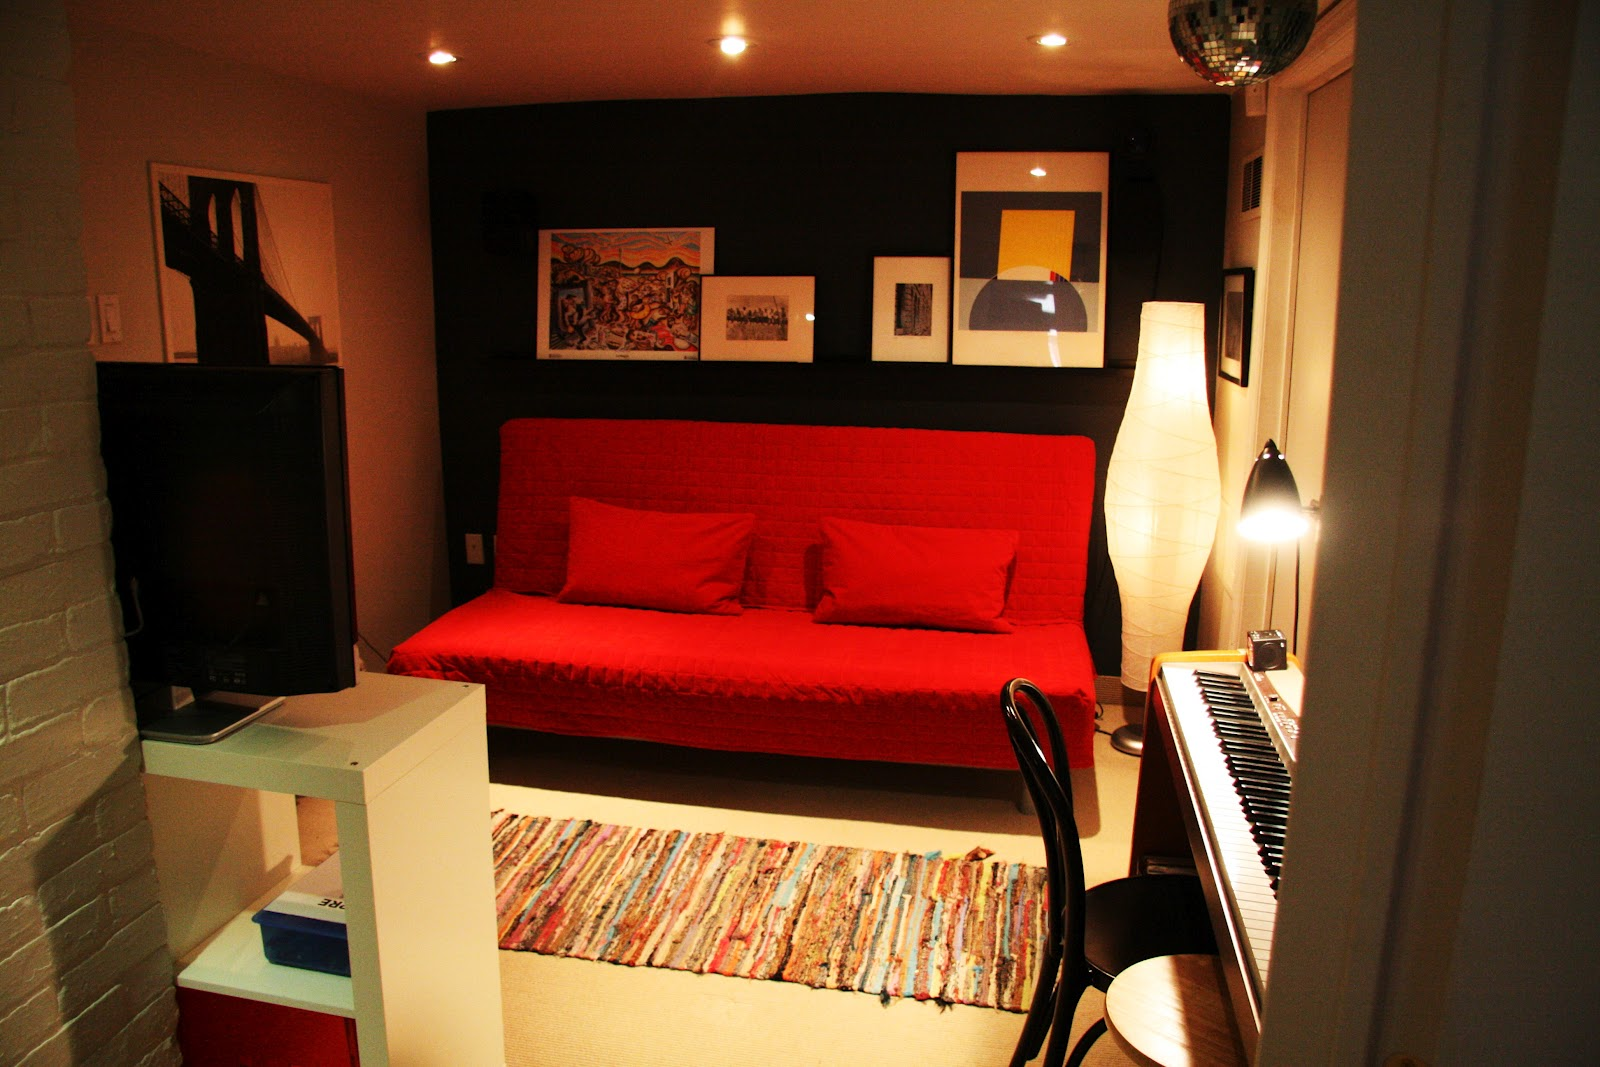 Unique Basement Media Room Design With Red Ikea Sofa Bed Design And Piano  With Black Chair